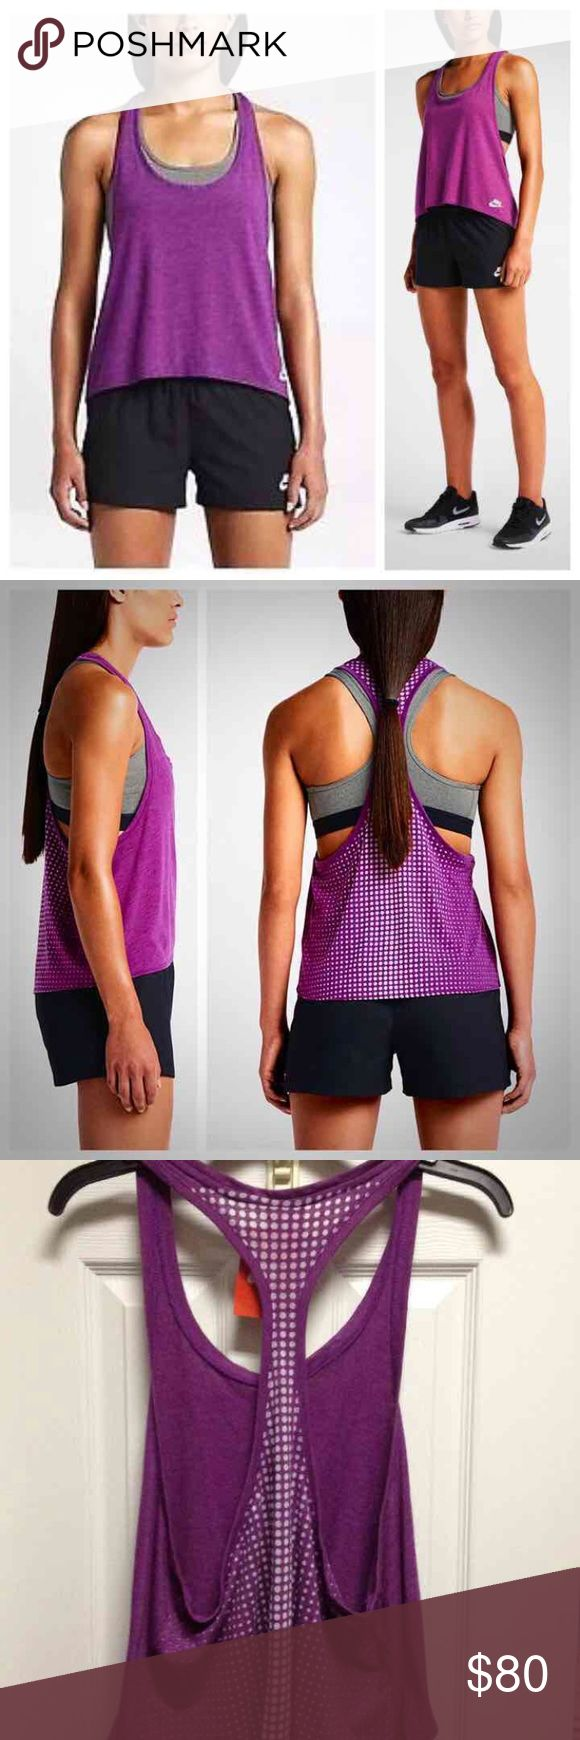 🆕 [Nike] Burnout Tank + Sports Bra NWT Nike Burnout Workout Tank in Purple/White Polka Dots. Size Large. Retail $50.  NWT Nike gray/black sports bra just like in stock photo. Size XL. Retail $30. Selling because it's a little bit more tighter on me than what I expected.  Price is Firm. Must purchase as bundle. Will not separate. Thanks! Nike Tops Tank Tops